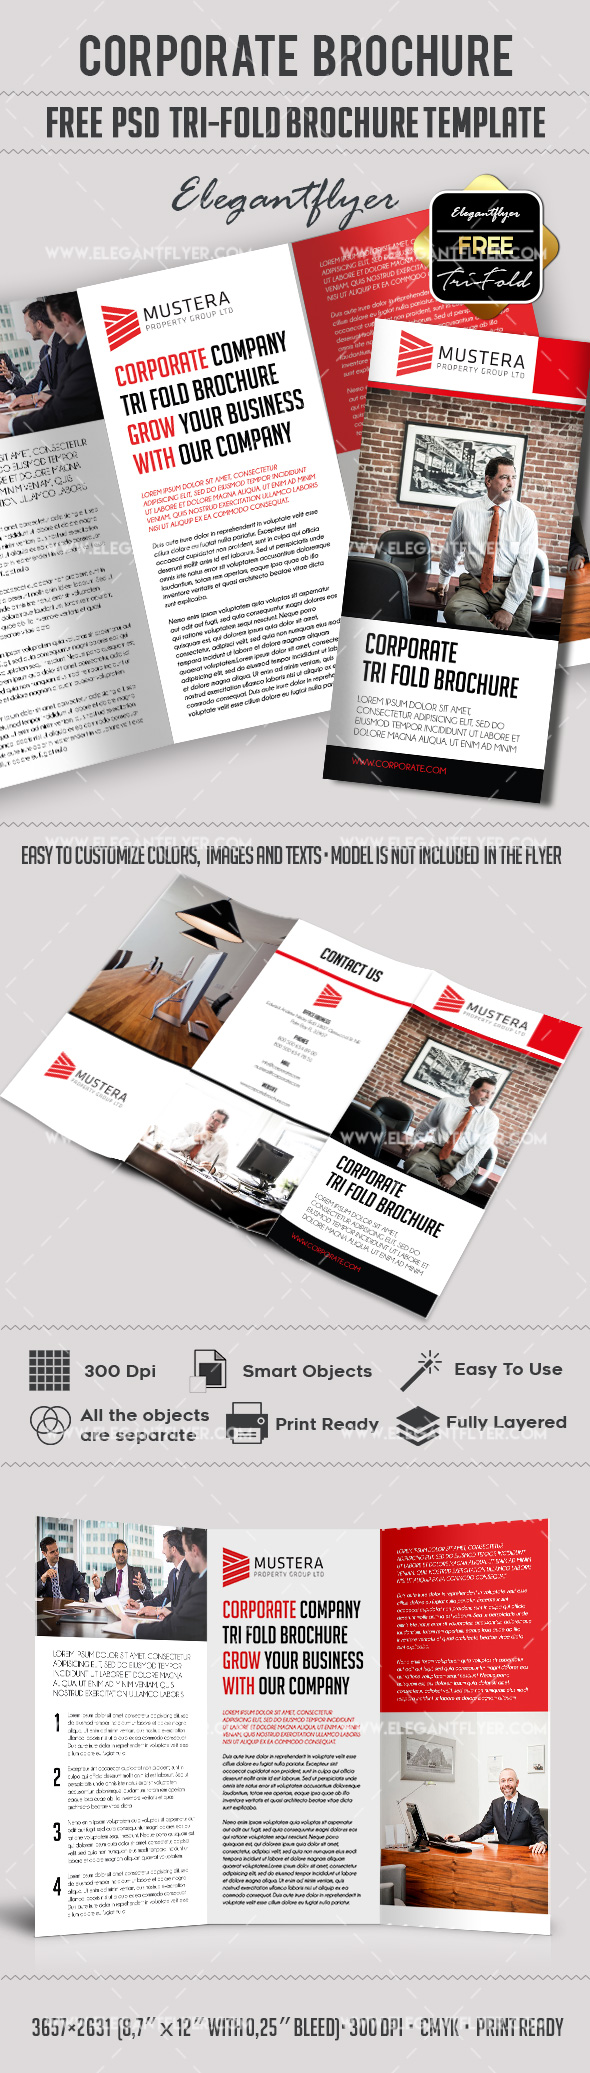 Corporate brochure template free by elegantflyer for Tri fold brochure template psd